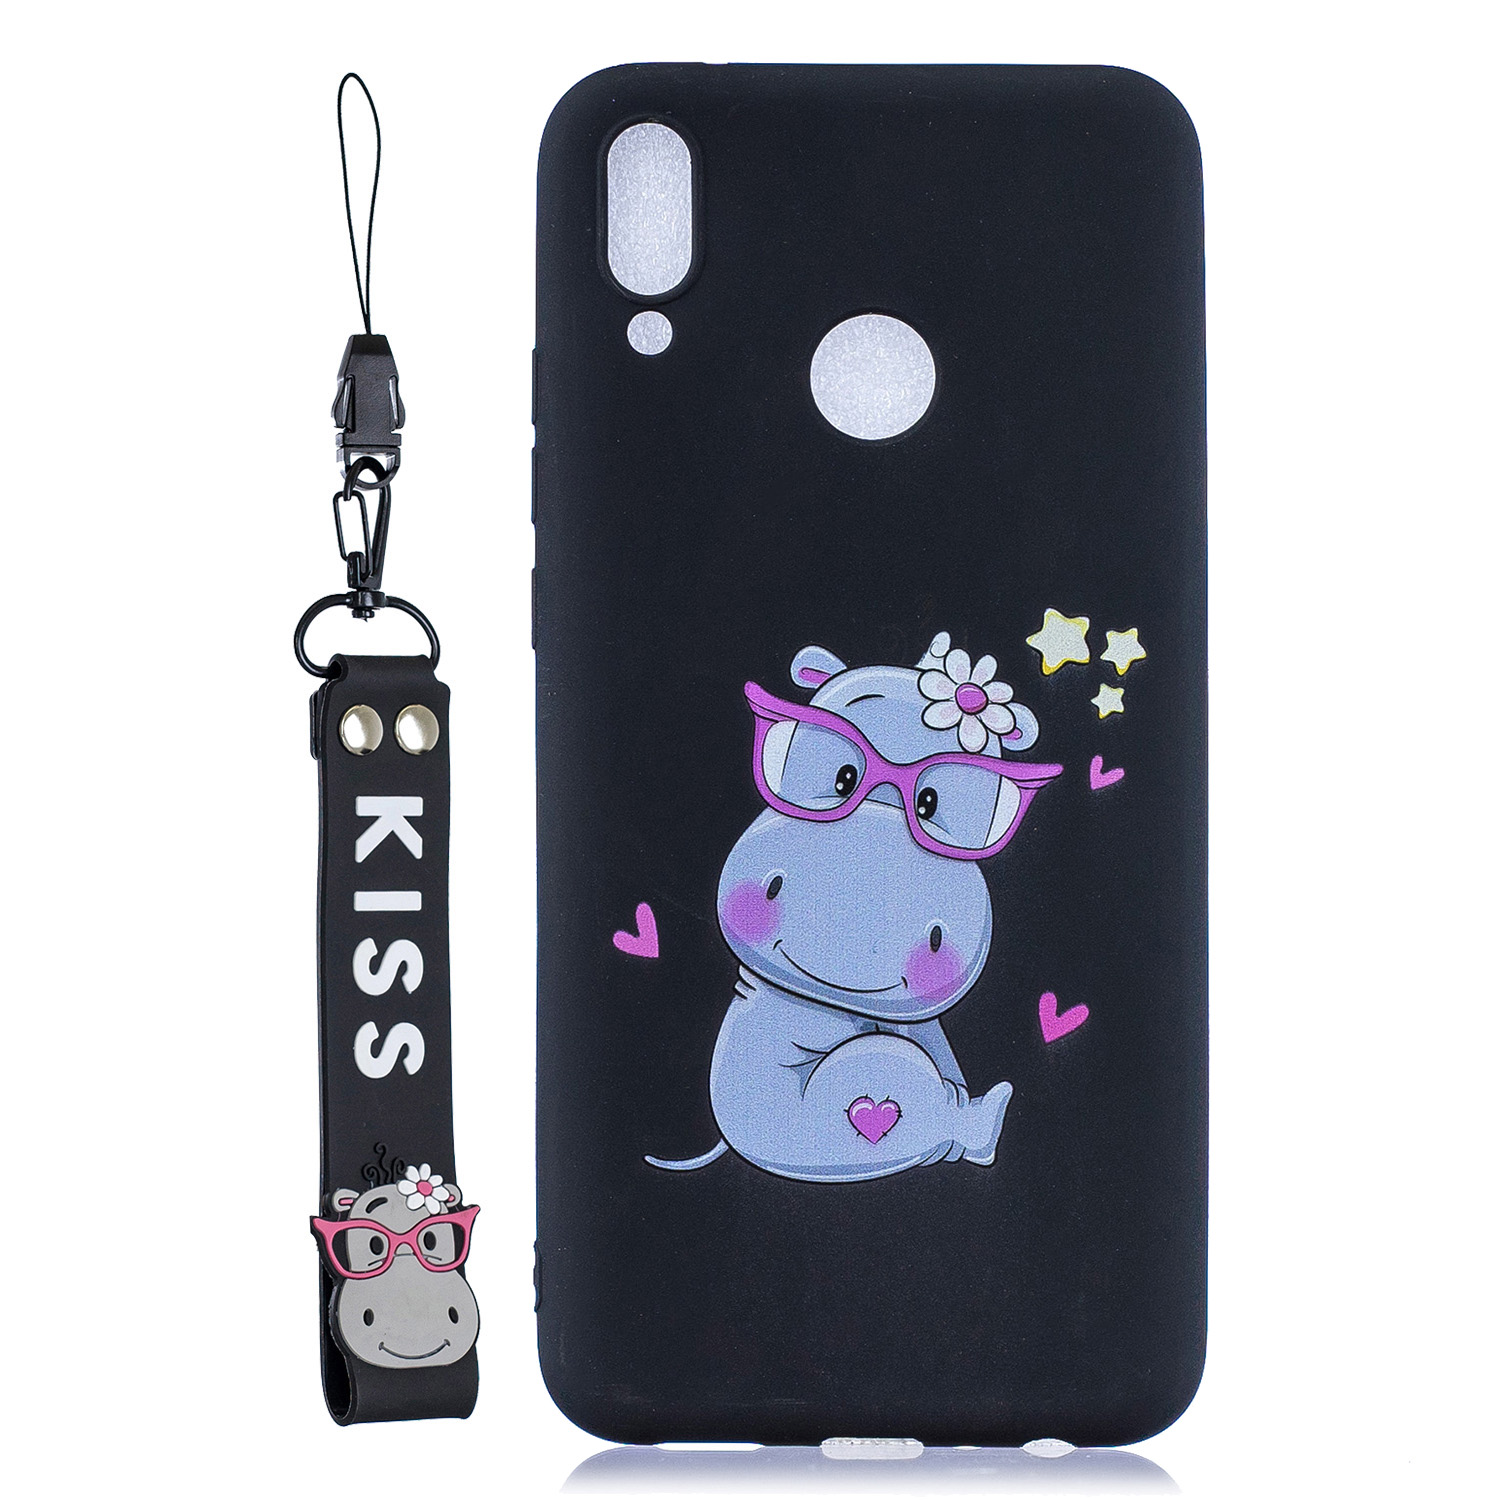 For HUAWEI Y9 2019 Cartoon Lovely Coloured Painted Soft TPU Back Cover Non-slip Shockproof Full Protective Case with Lanyard black